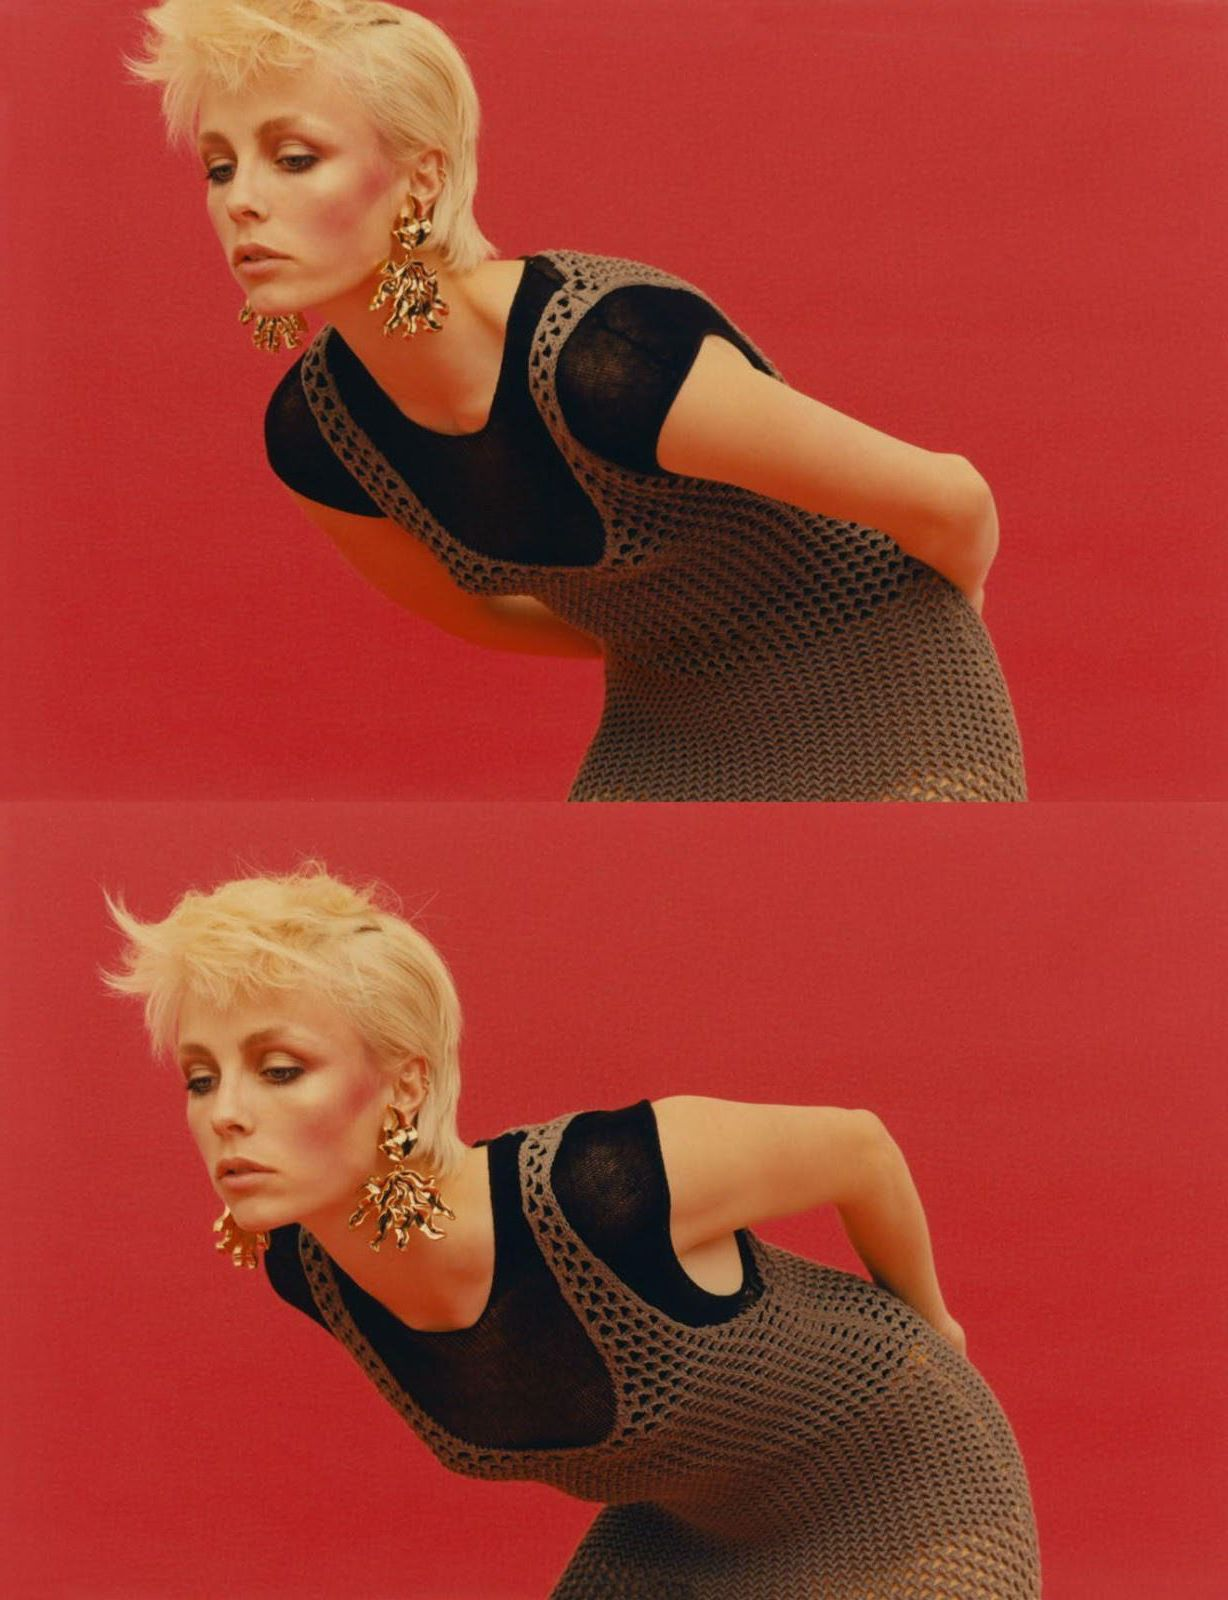 Edie Campbell at red background